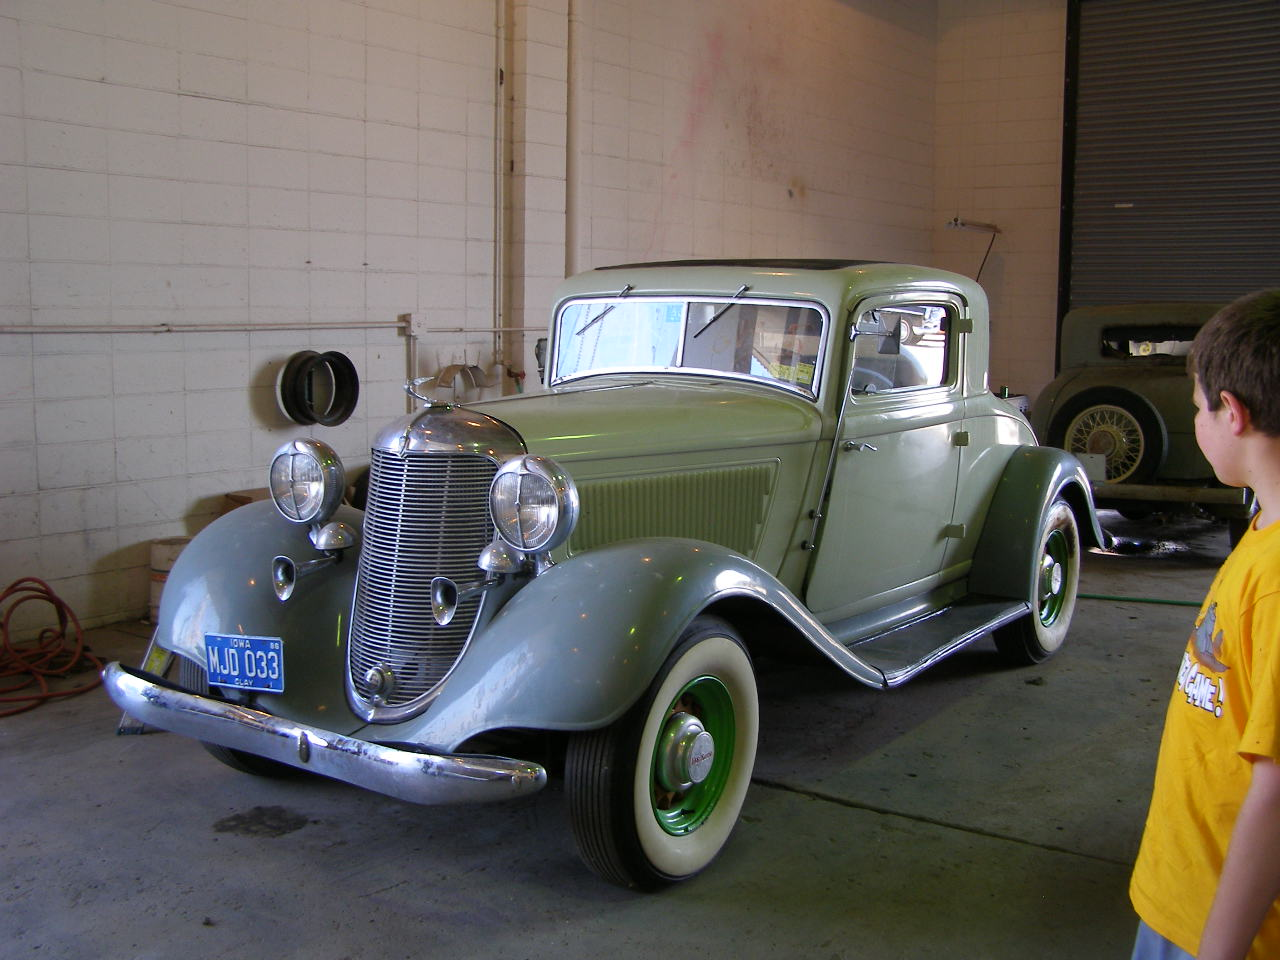 File:1933 DeSoto 2 Suicide Door Rumble Seat Coupe.jpg & File:1933 DeSoto 2 Suicide Door Rumble Seat Coupe.jpg - Wikimedia ... Pezcame.Com